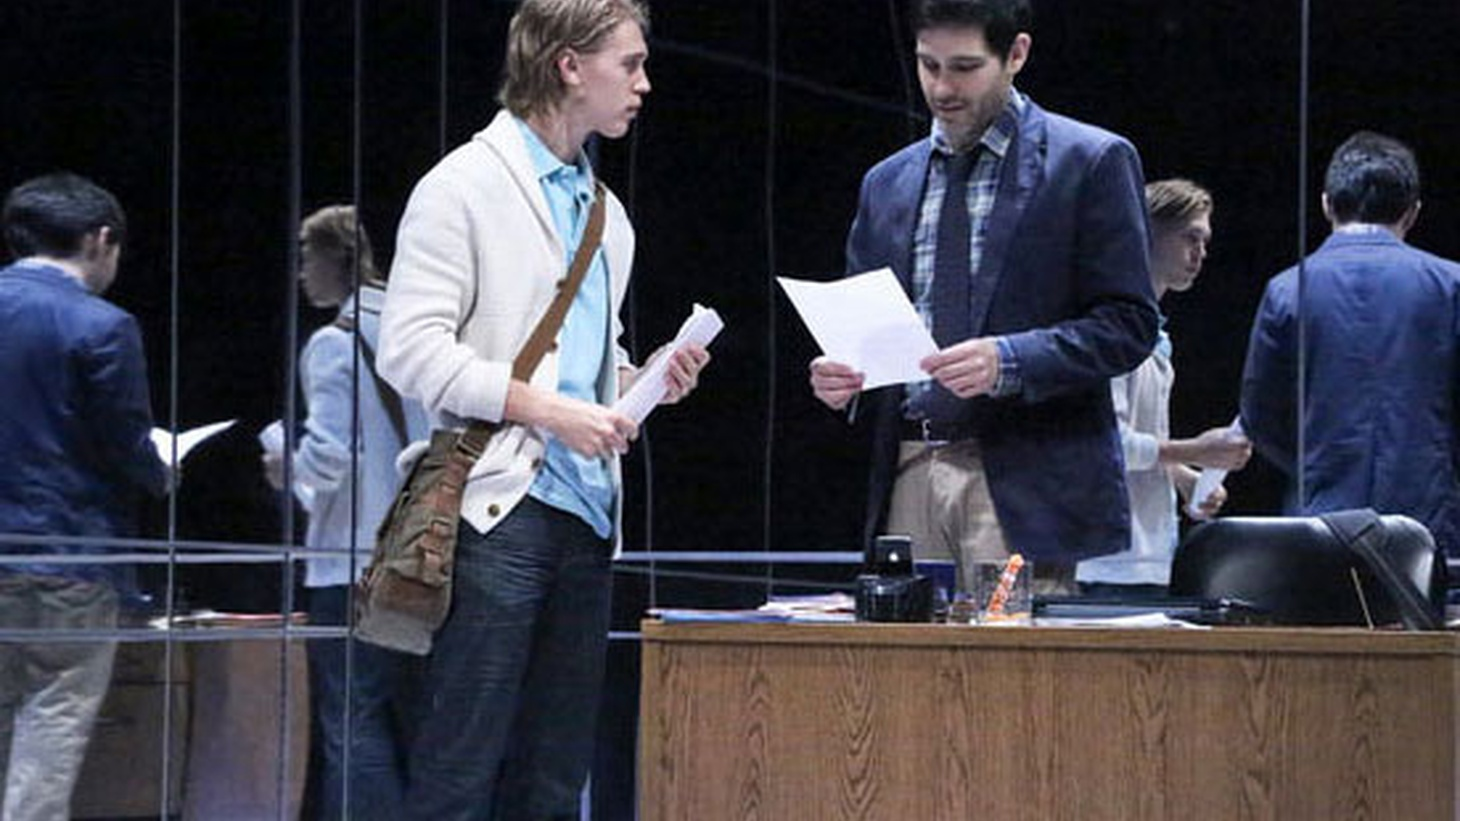 Playwright Steven Drukman's Death of the Author combines postmodern literary theory, the power dynamics of the classroom and an ethics seminar on intention.